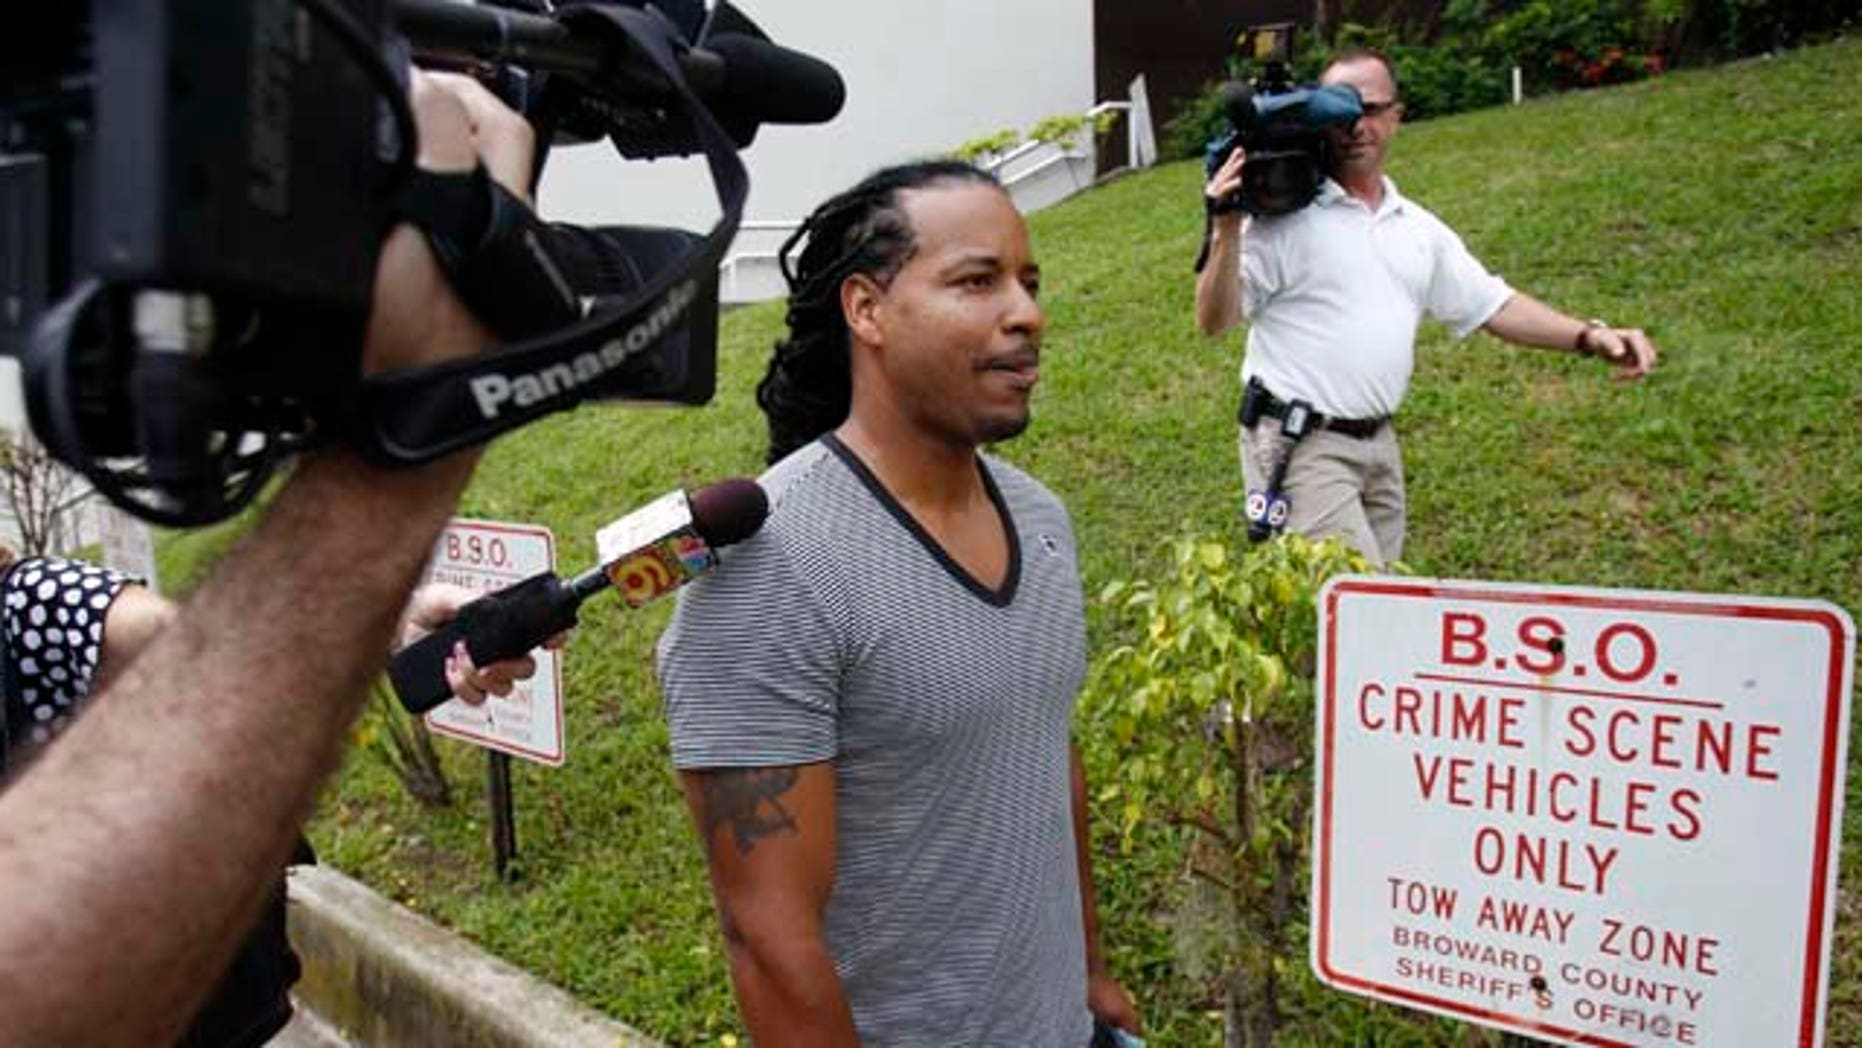 Former World Series MVP  Manny Ramirez leaves the Broward County Jail in Ft. Lauderdale, Fla., Tuesday, Sept. 13, 2011. Ramirez was released from jail after authorities arrested him for allegedly slapping his wife during a dispute at their South Florida home. (AP Photo/Hans Deryk)